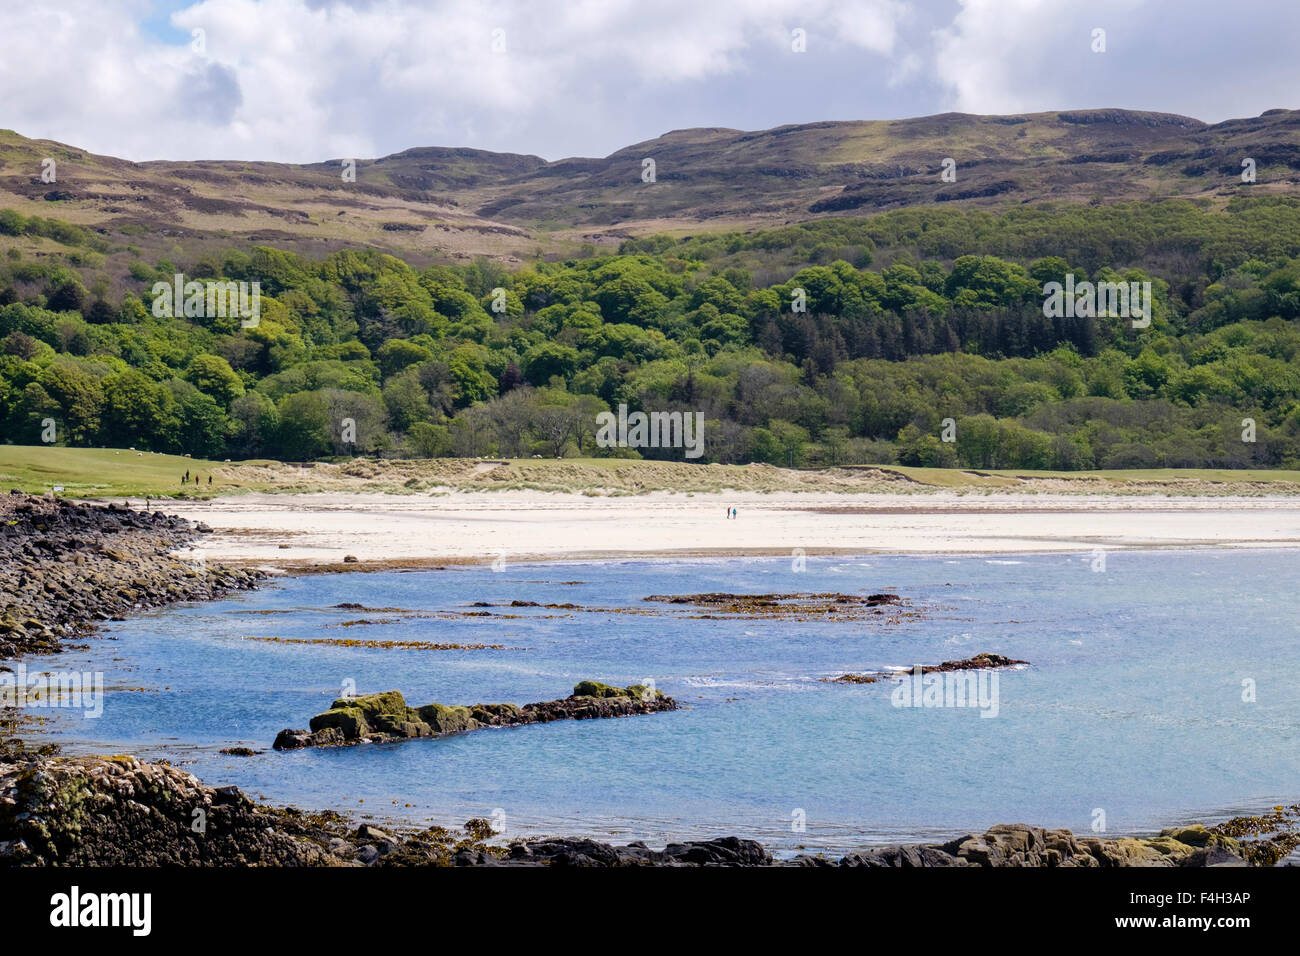 Mull's only sandy beach at Calgary Bay, Isle of Mull, Argyll and Bute, Inner Hebrides, Western Isles, Scotland, - Stock Image